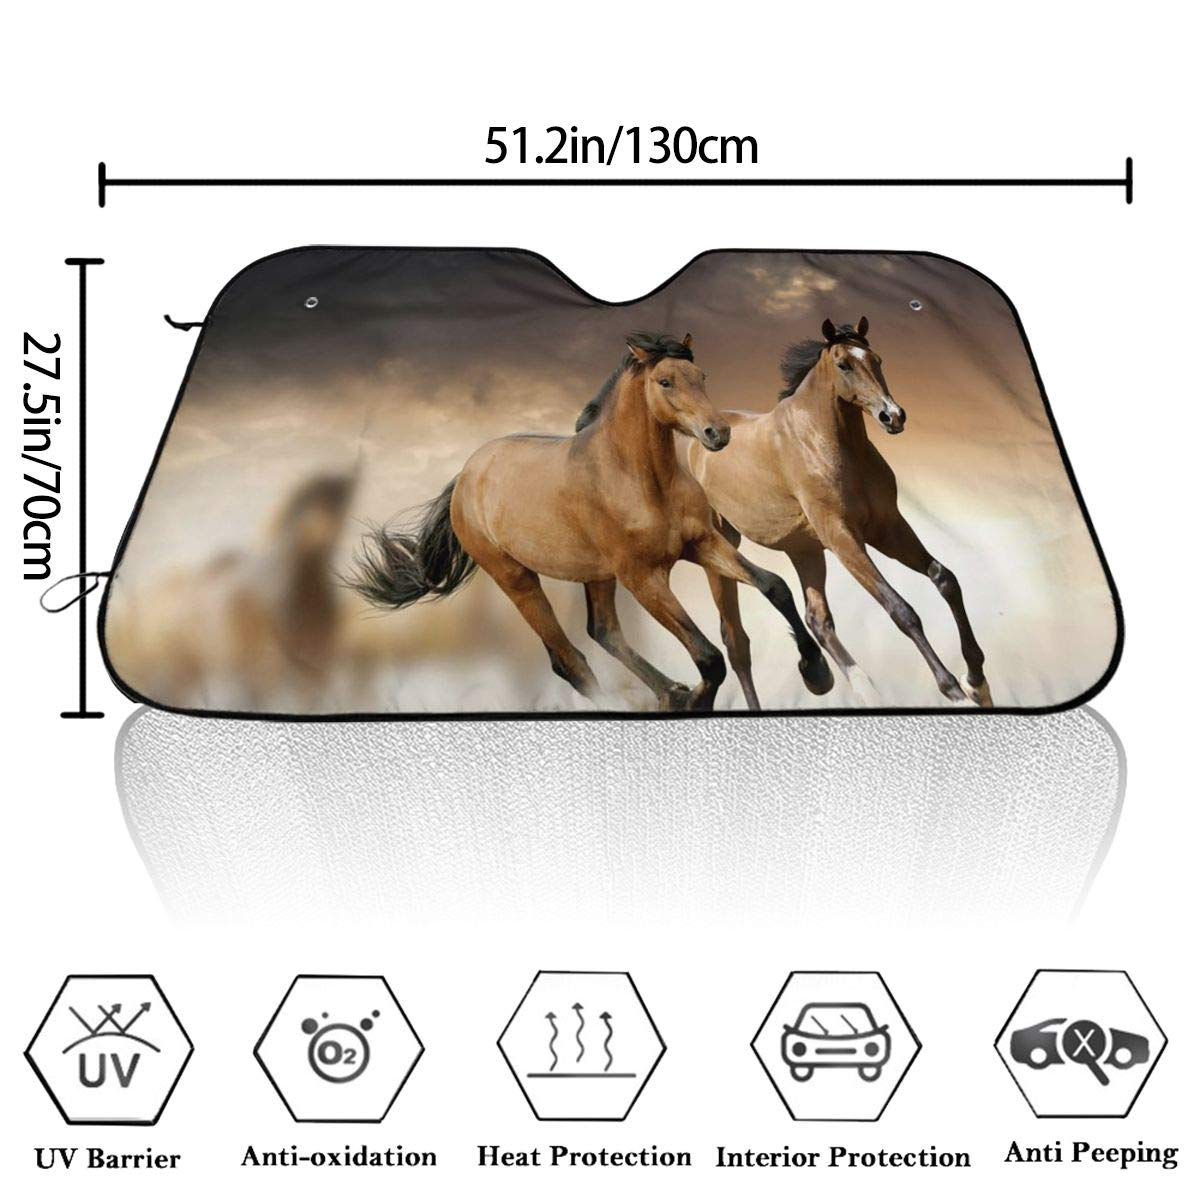 Auto Car Truck SUV Vehicle Universal-fit Front Windshield Sunshade PecoStar Running Horse Accordion Sun Shade